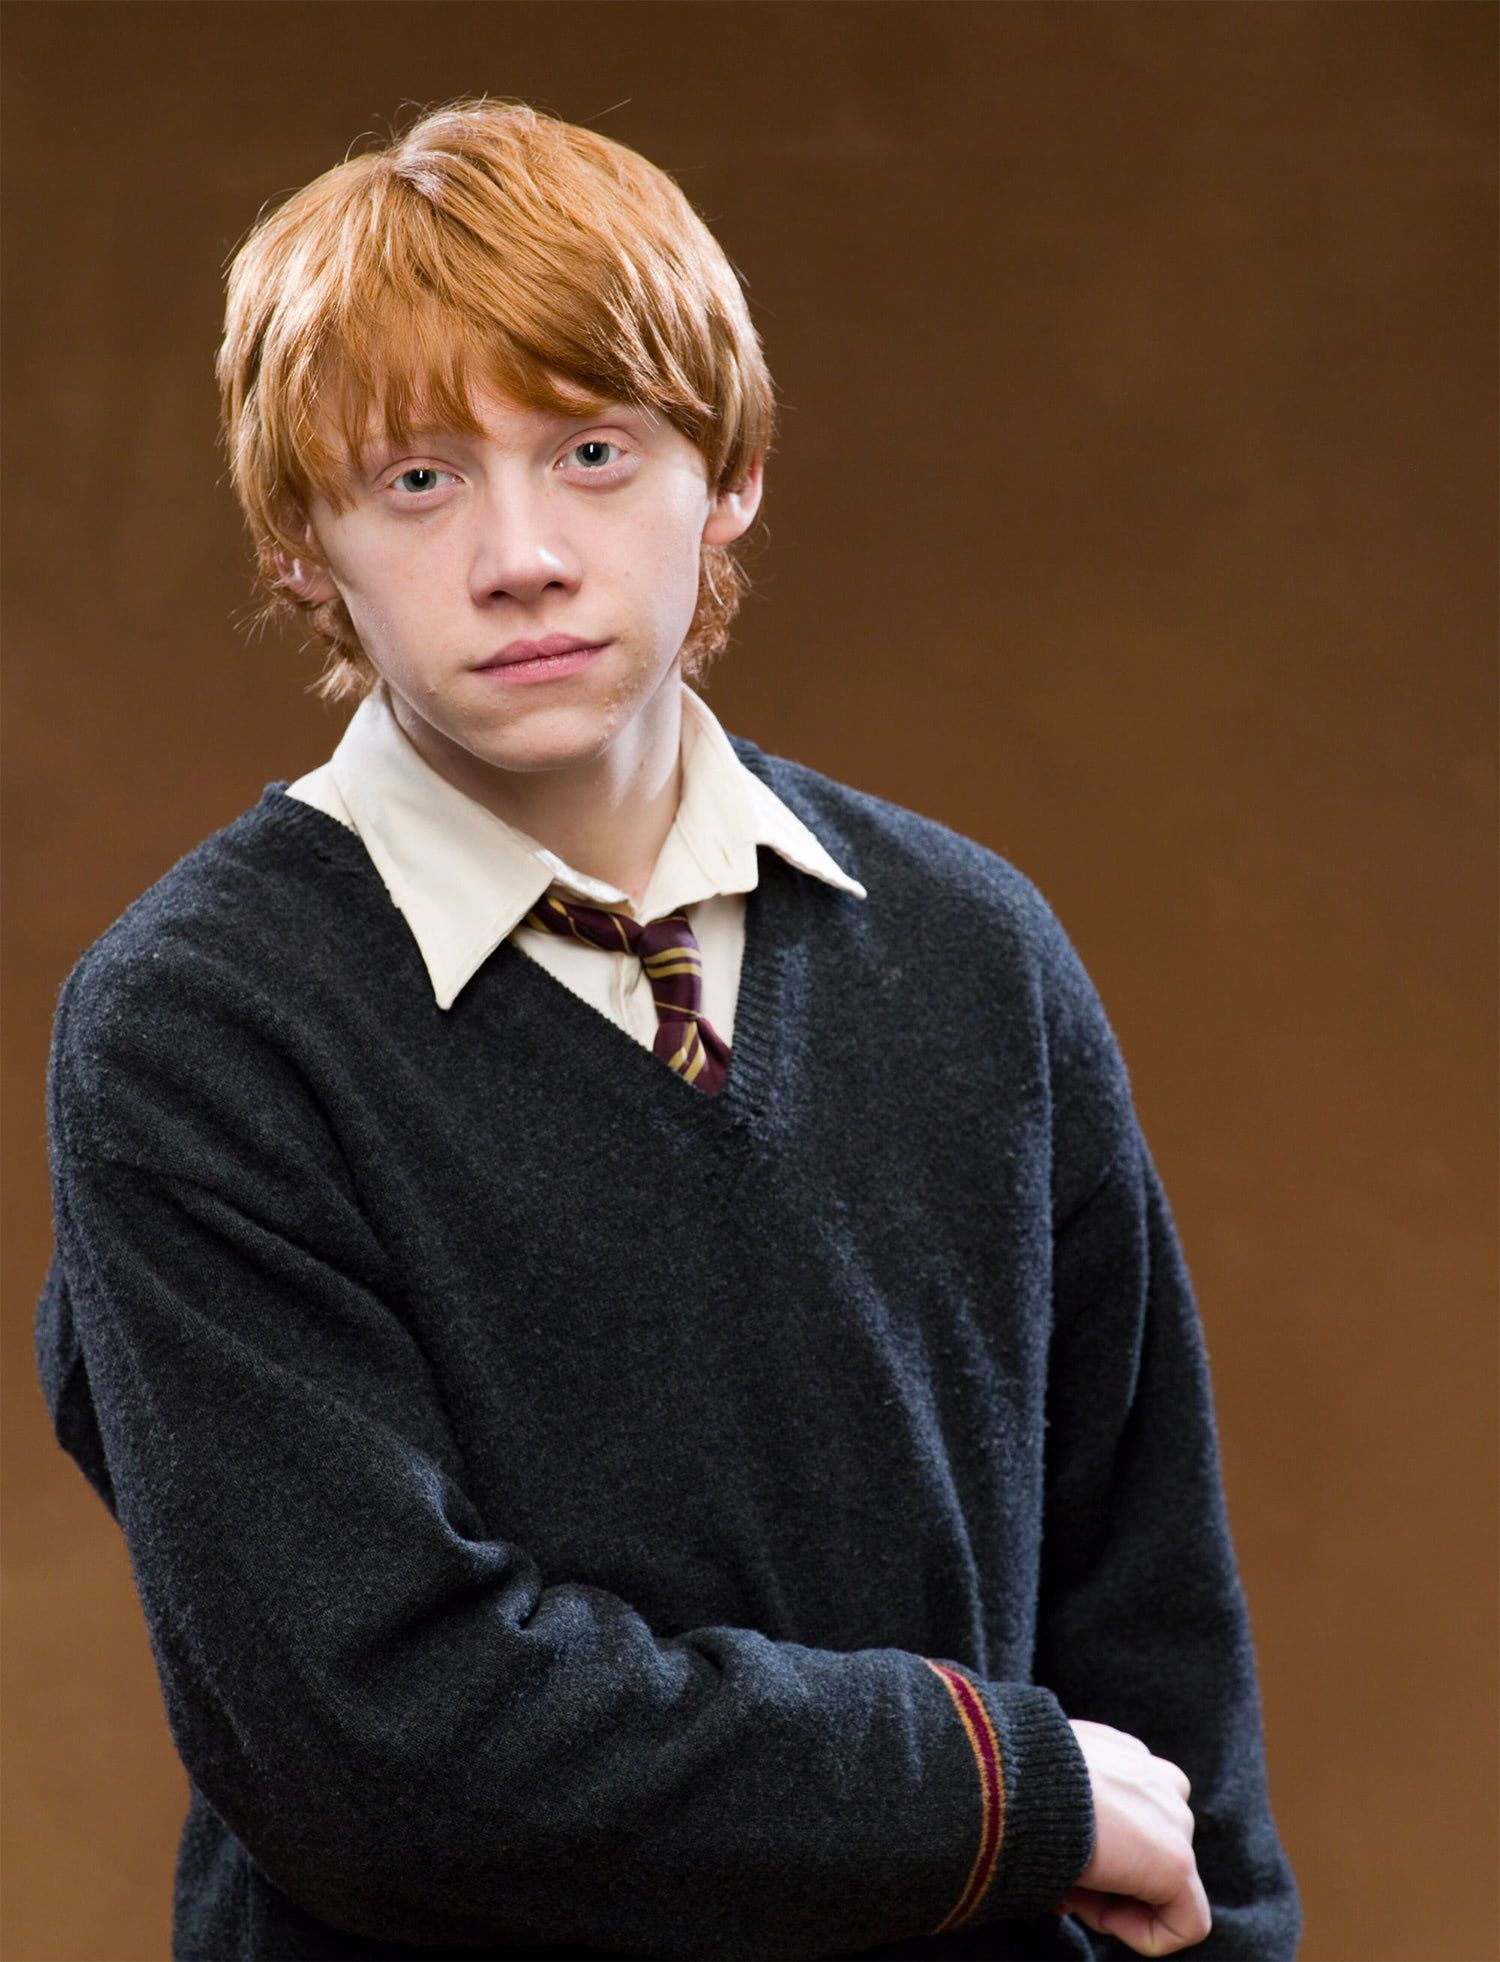 Harry Potter Quiz: How Well Do You Know Ron Weasley?